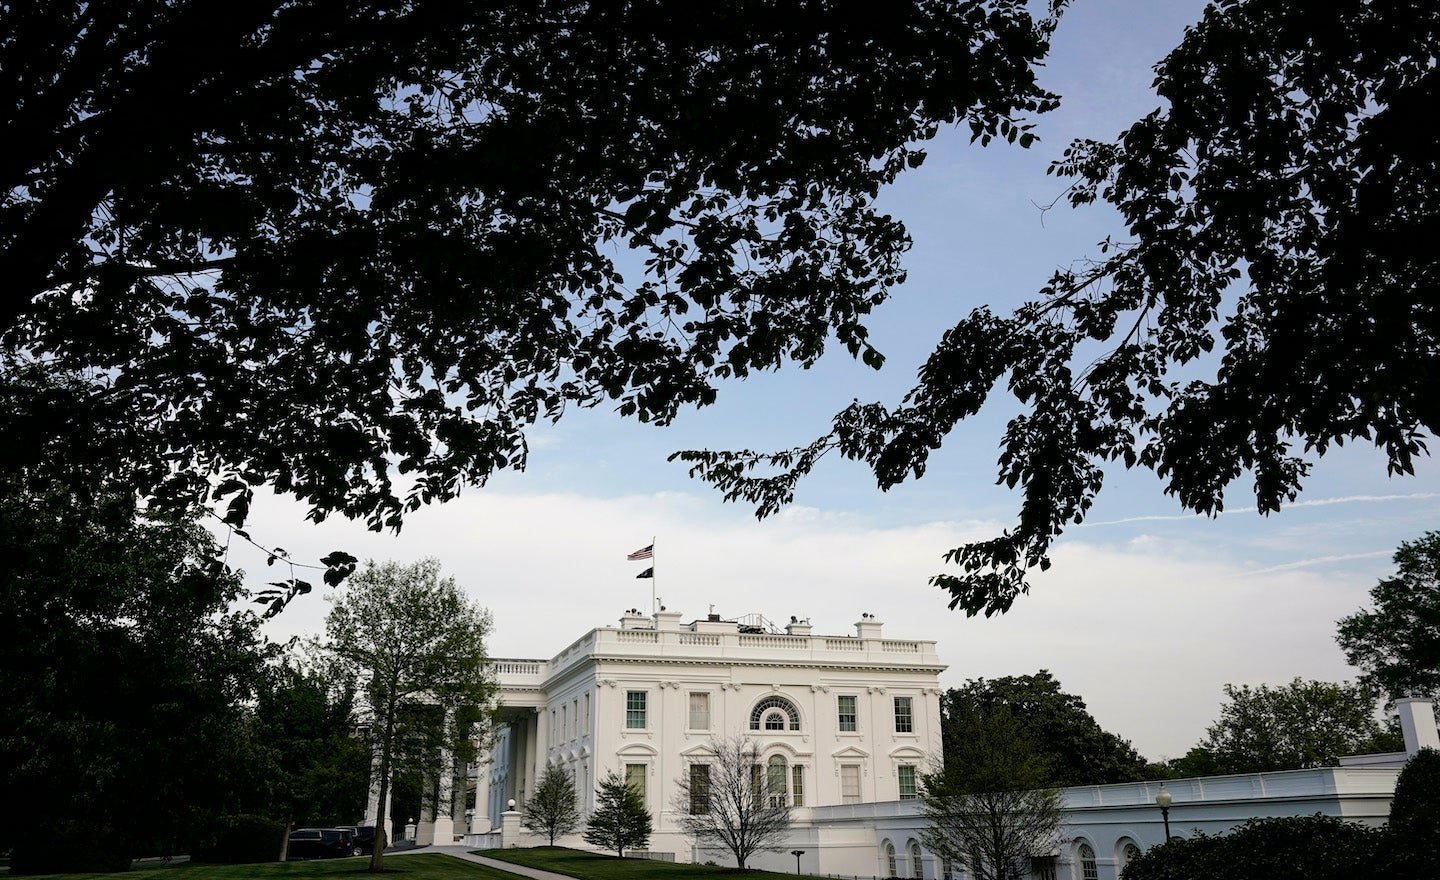 Fully vaccinated White House official and Pelosi aide test positive for COVID-19